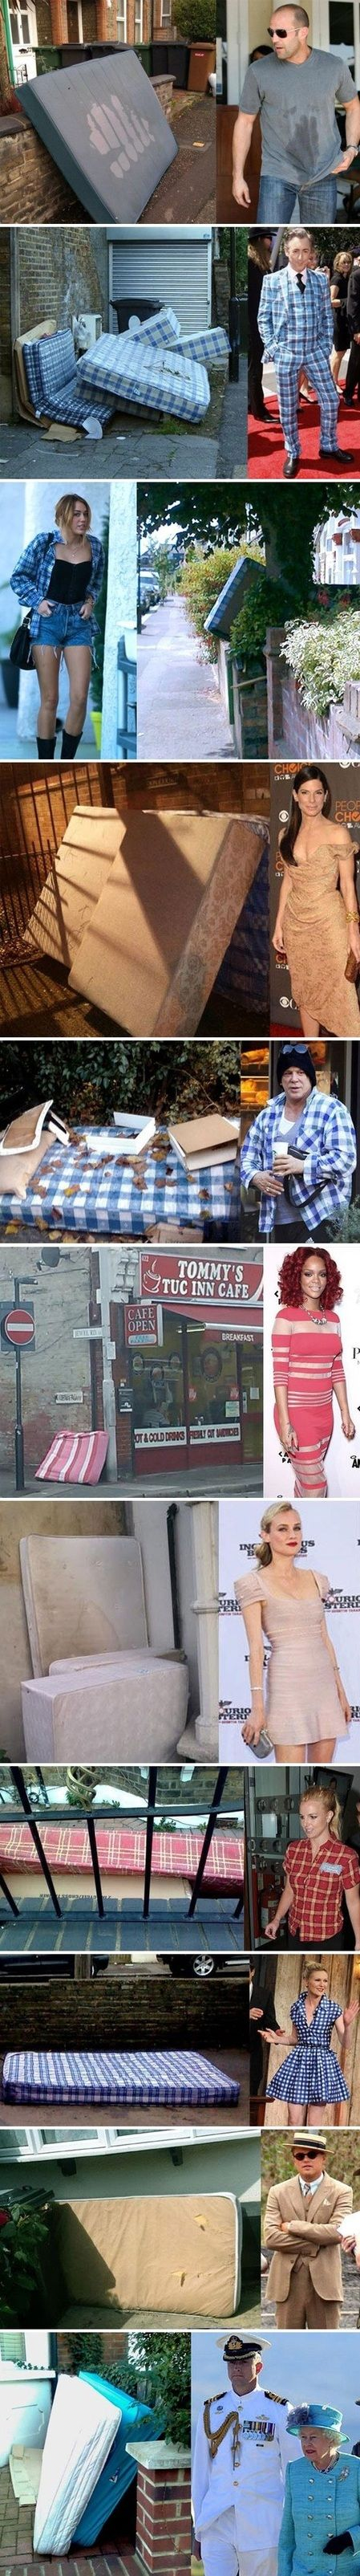 celebs with clothes like mattresses